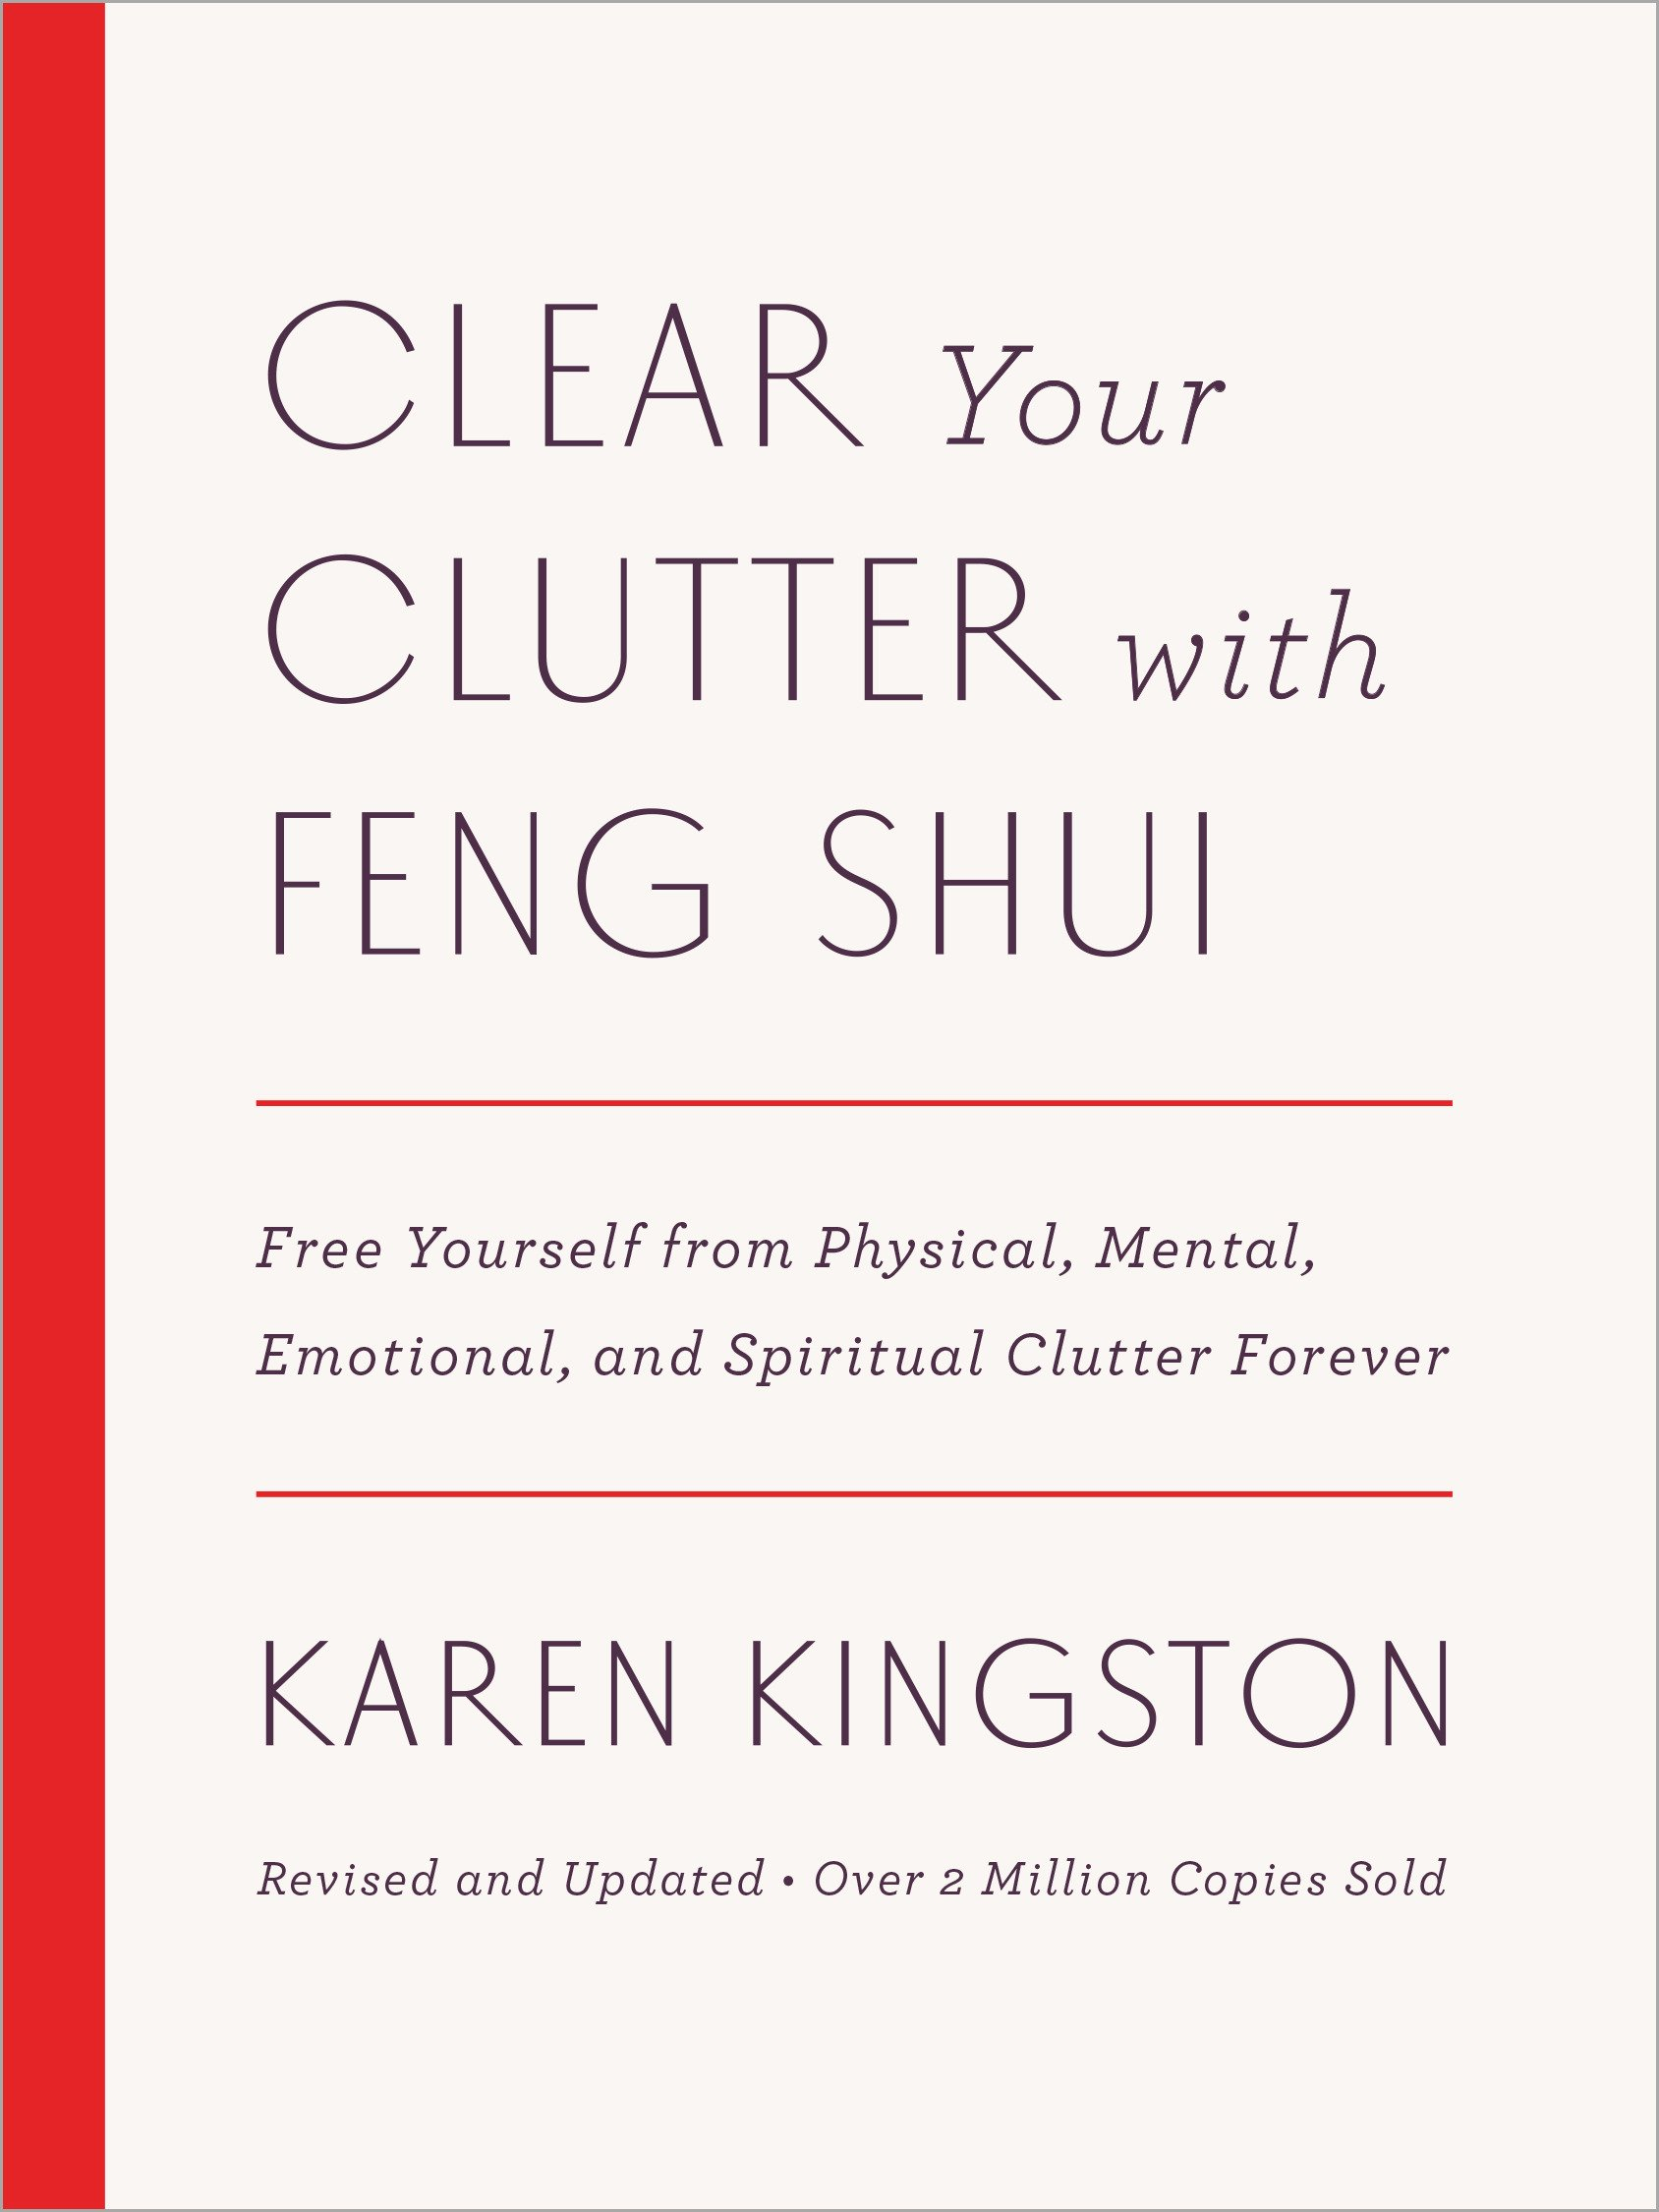 Clear Your Clutter Revised Updated product image